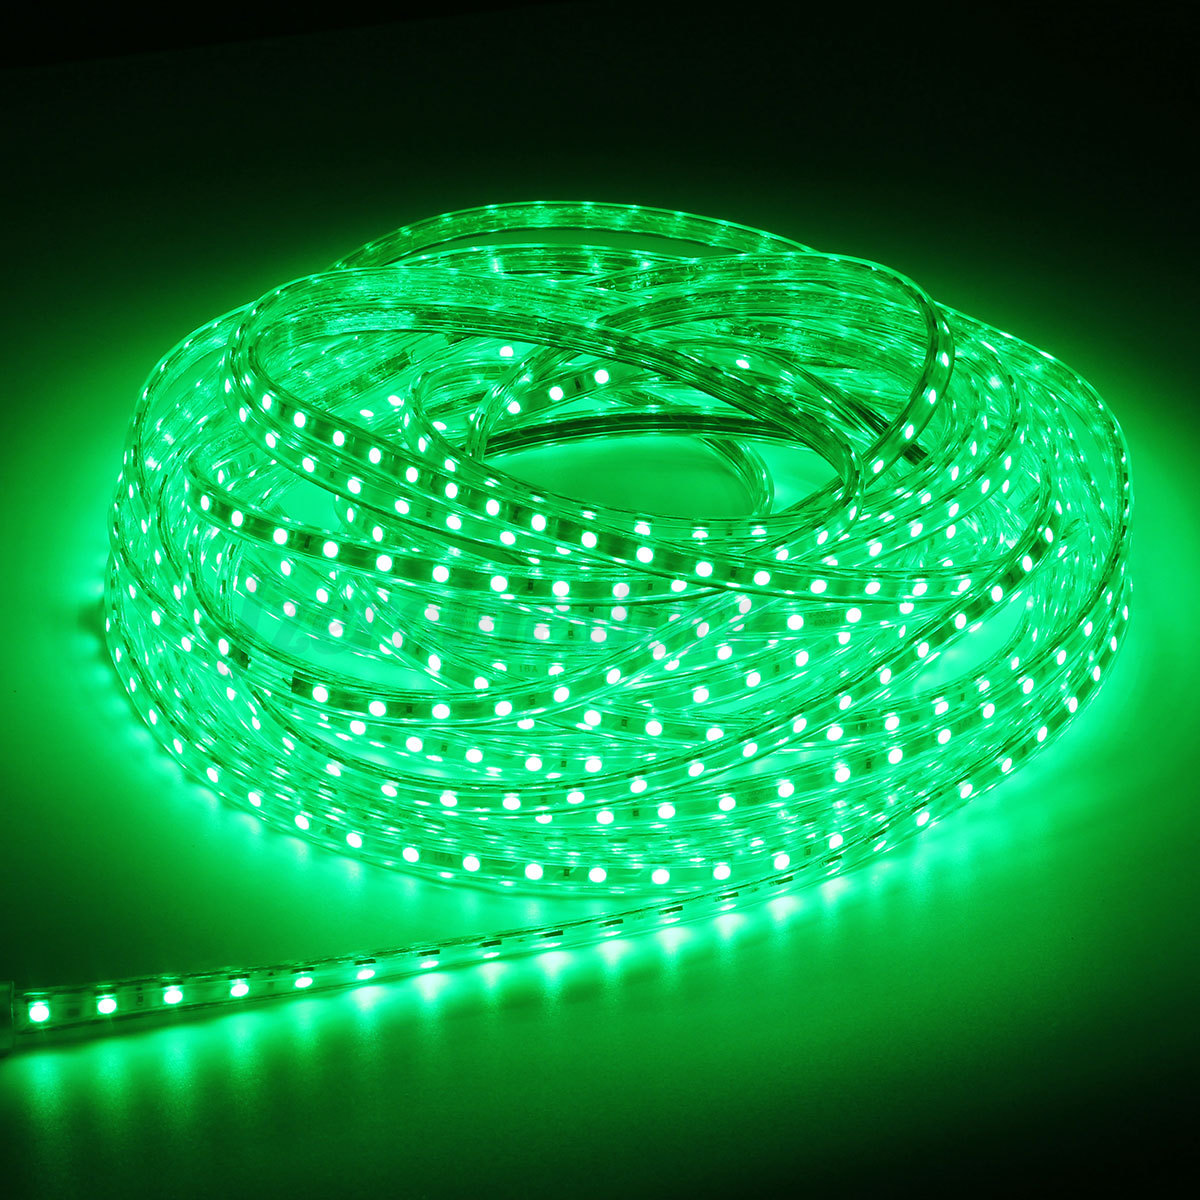 1 20m waterproof ip67 smd 5050 led strip 220v 60 leds m flexible tape rope light ebay. Black Bedroom Furniture Sets. Home Design Ideas